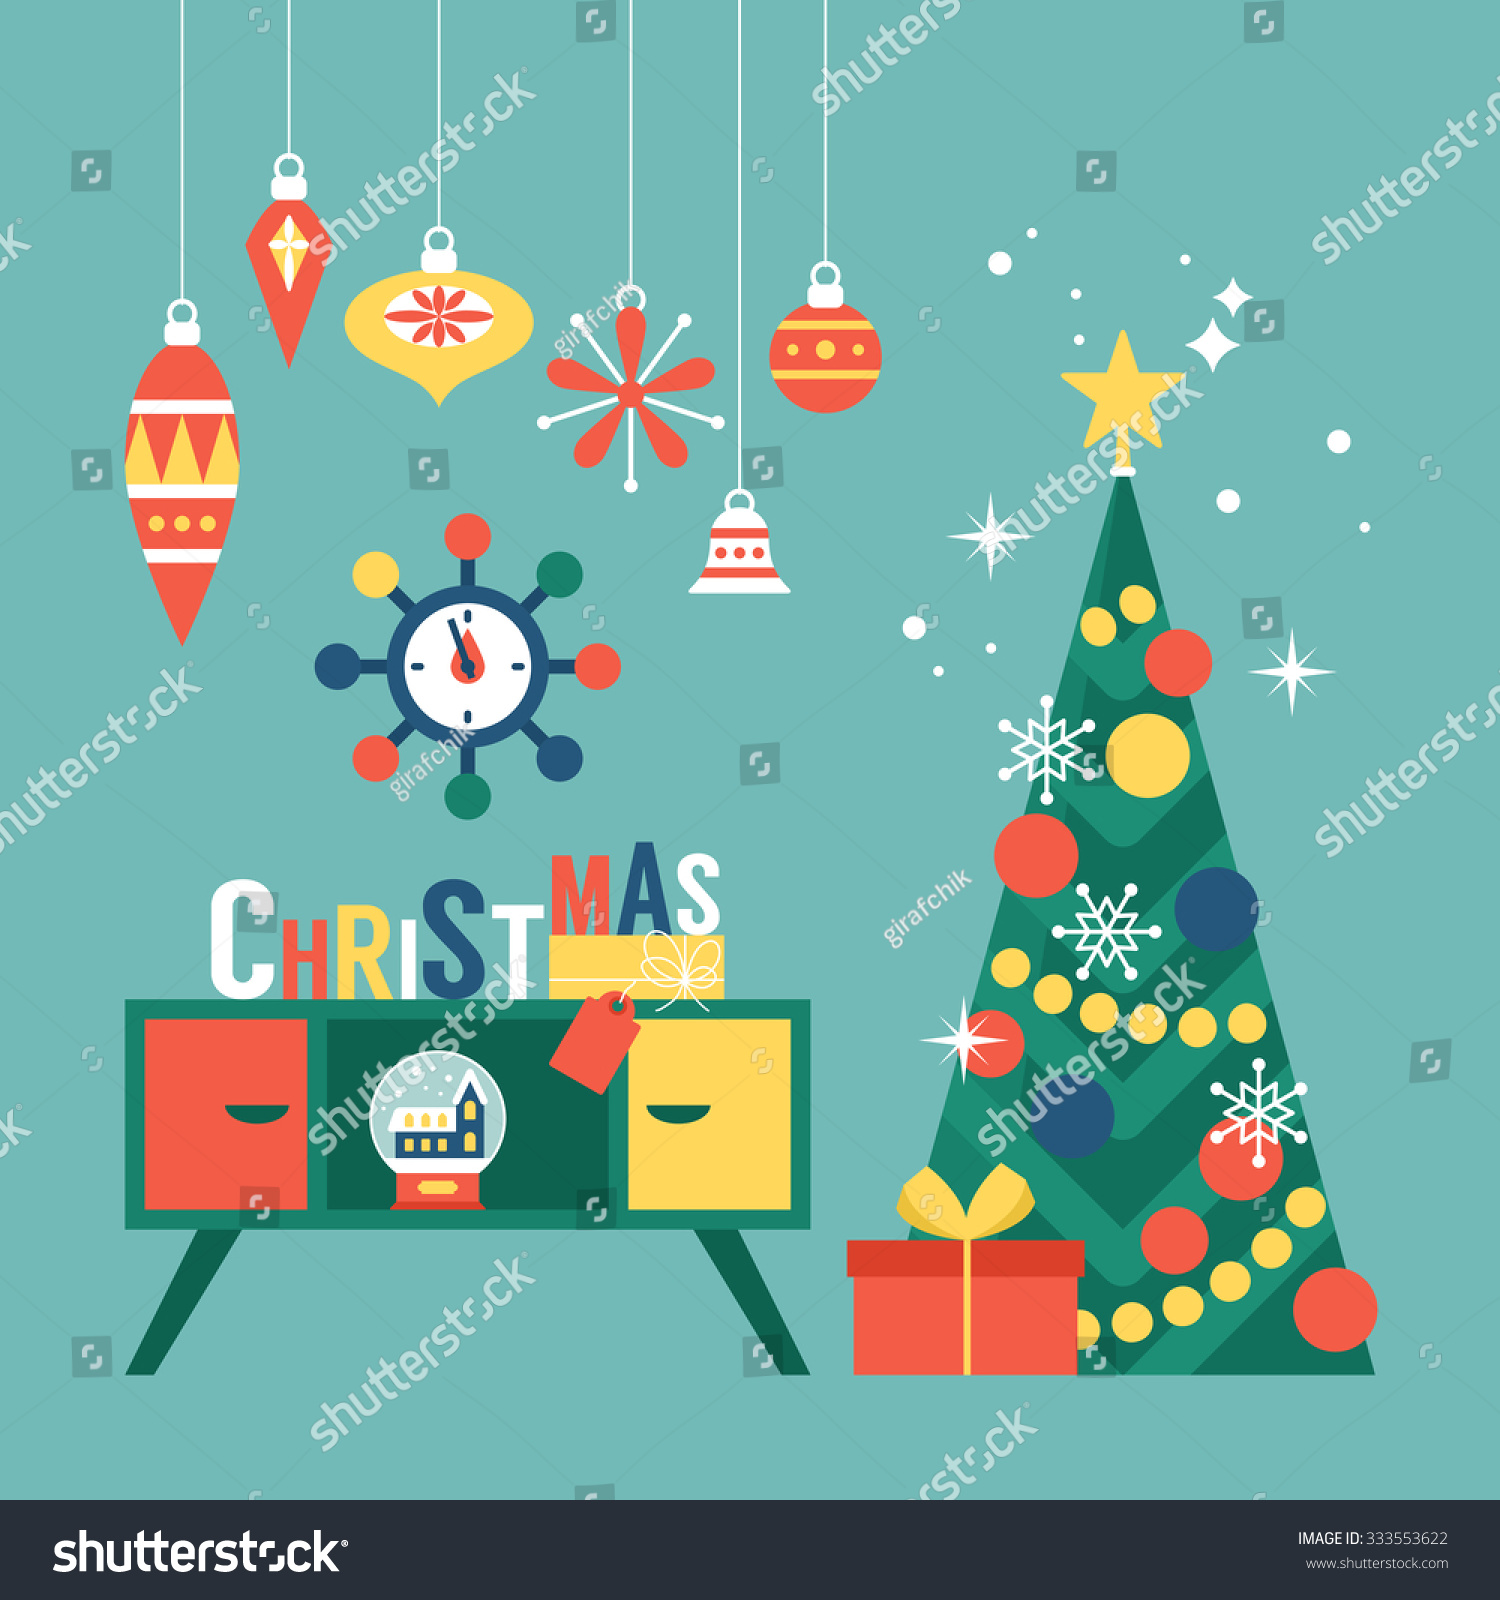 Modern creative christmas greeting card design with christmas tree